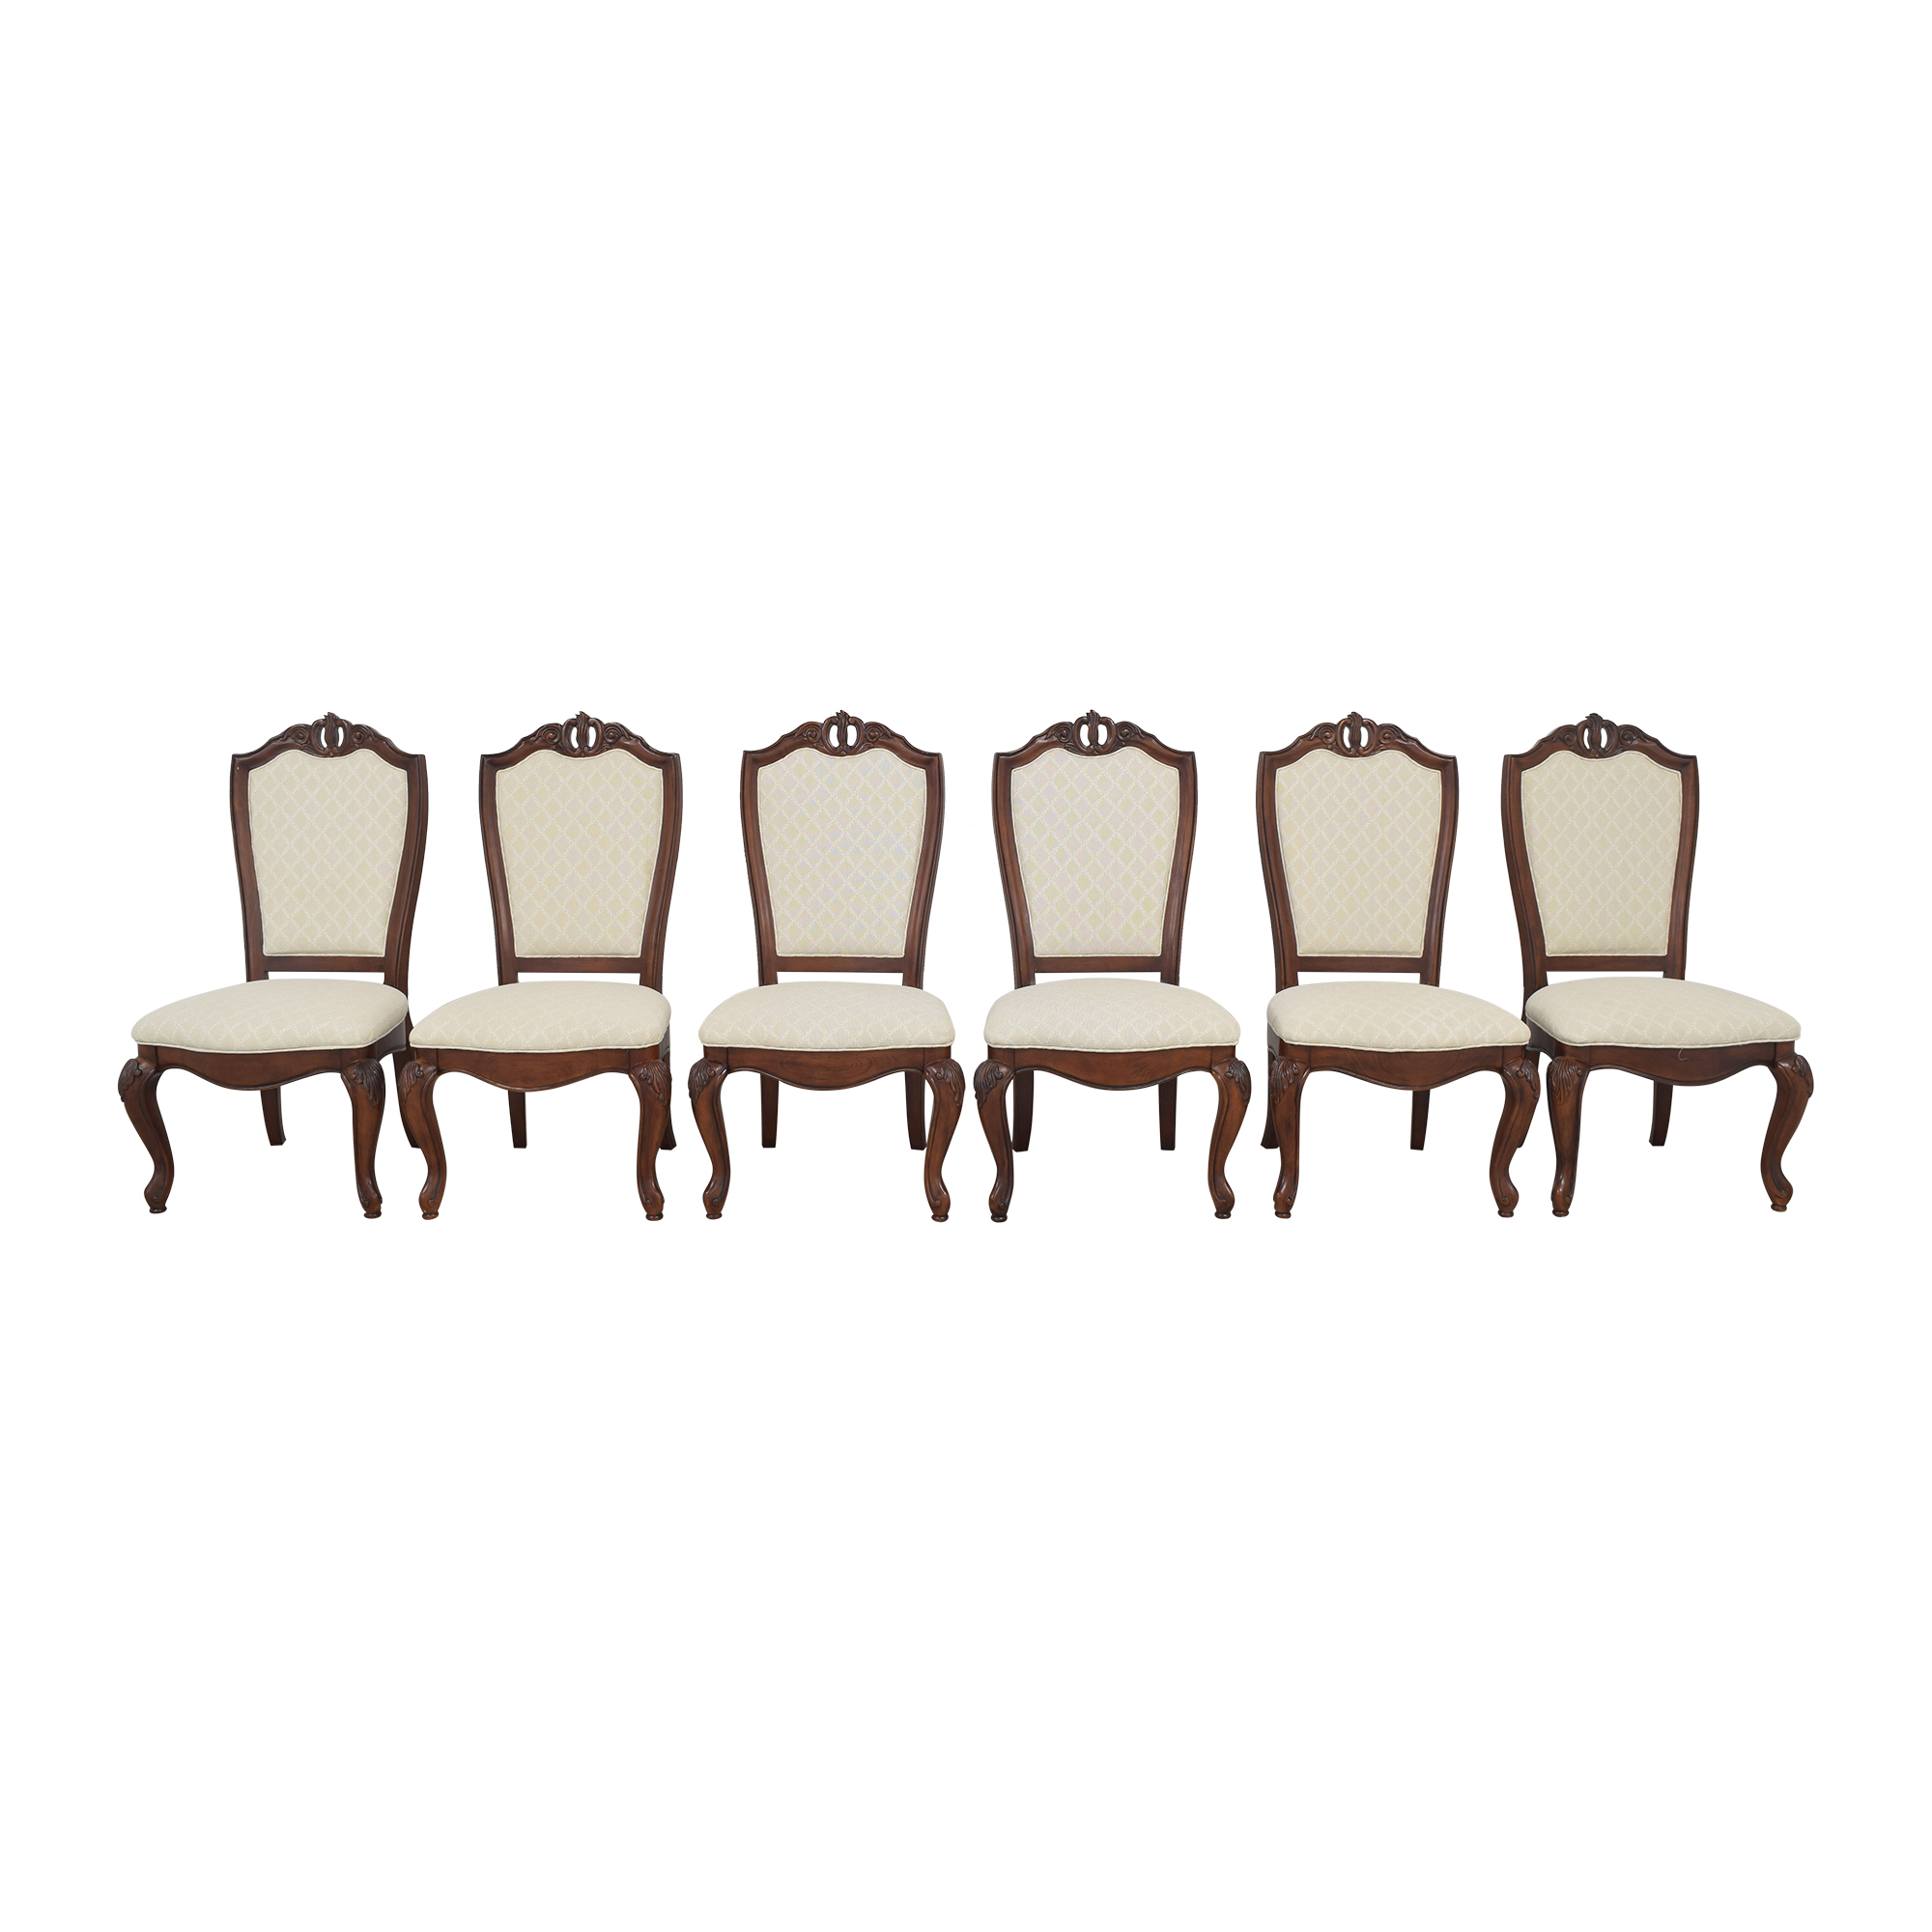 buy American Drew Upholstered Dining Chairs American Drew Dining Chairs